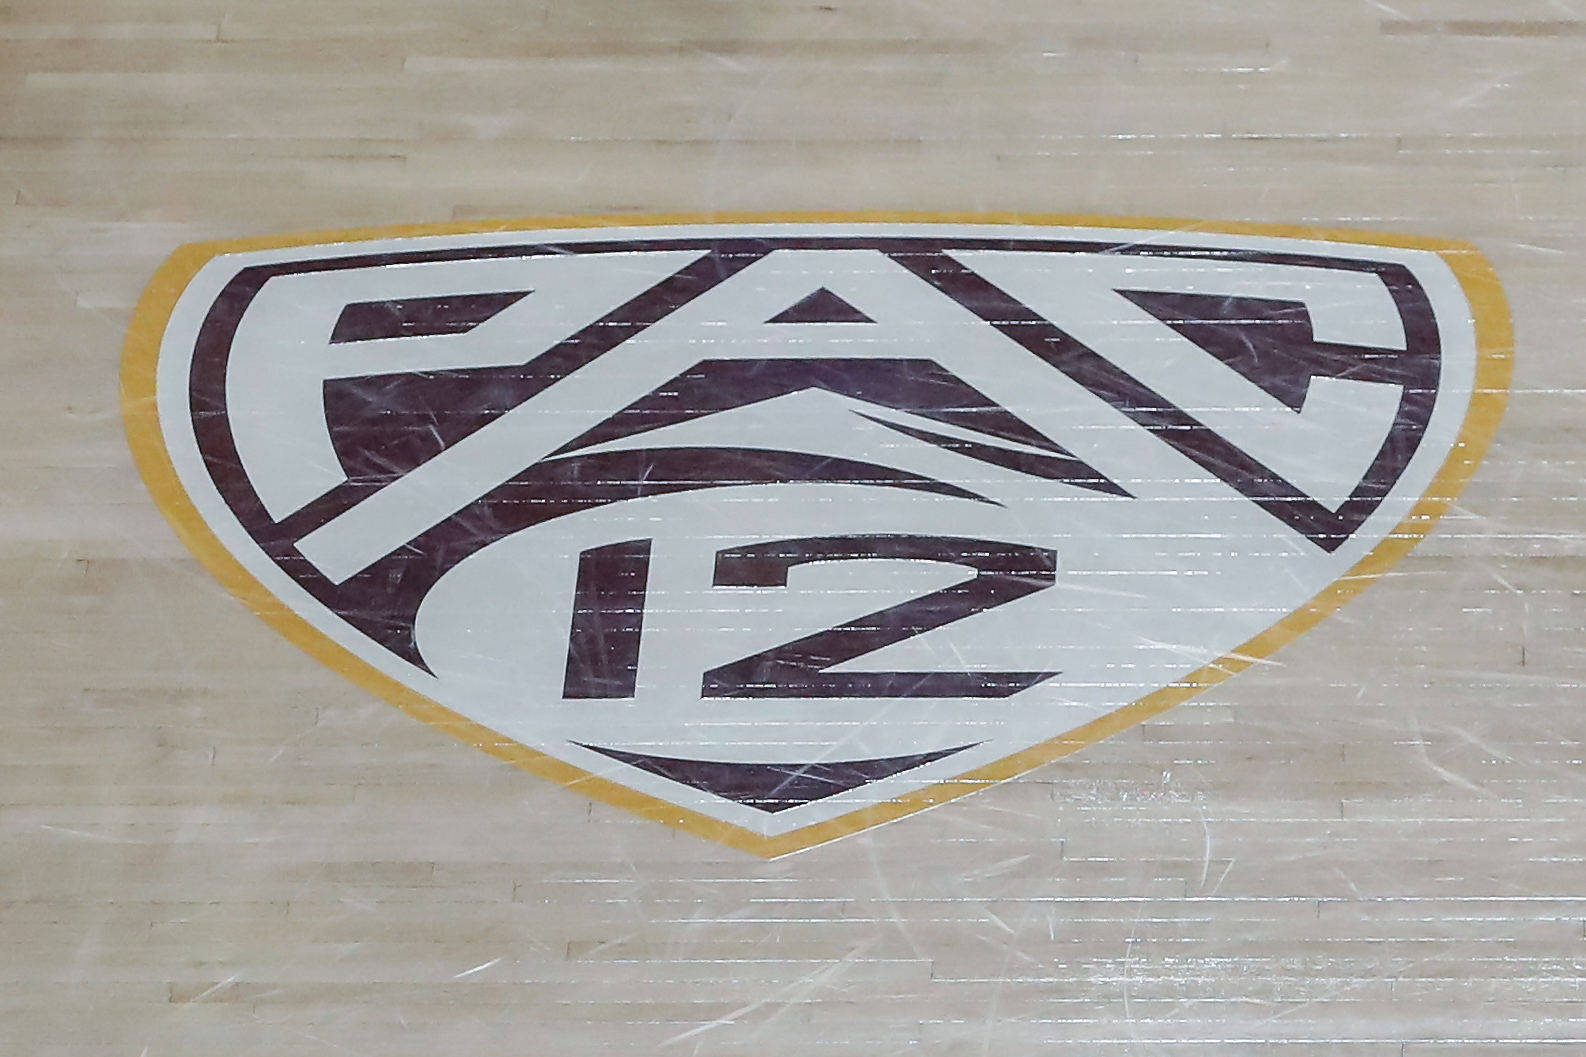 A Pac 12 logo on the court before the college basketball game between the UCLA Bruins and the Arizona State Sun Devils on January 7, 2021 at Desert Financial Arena in Tempe, Arizona.